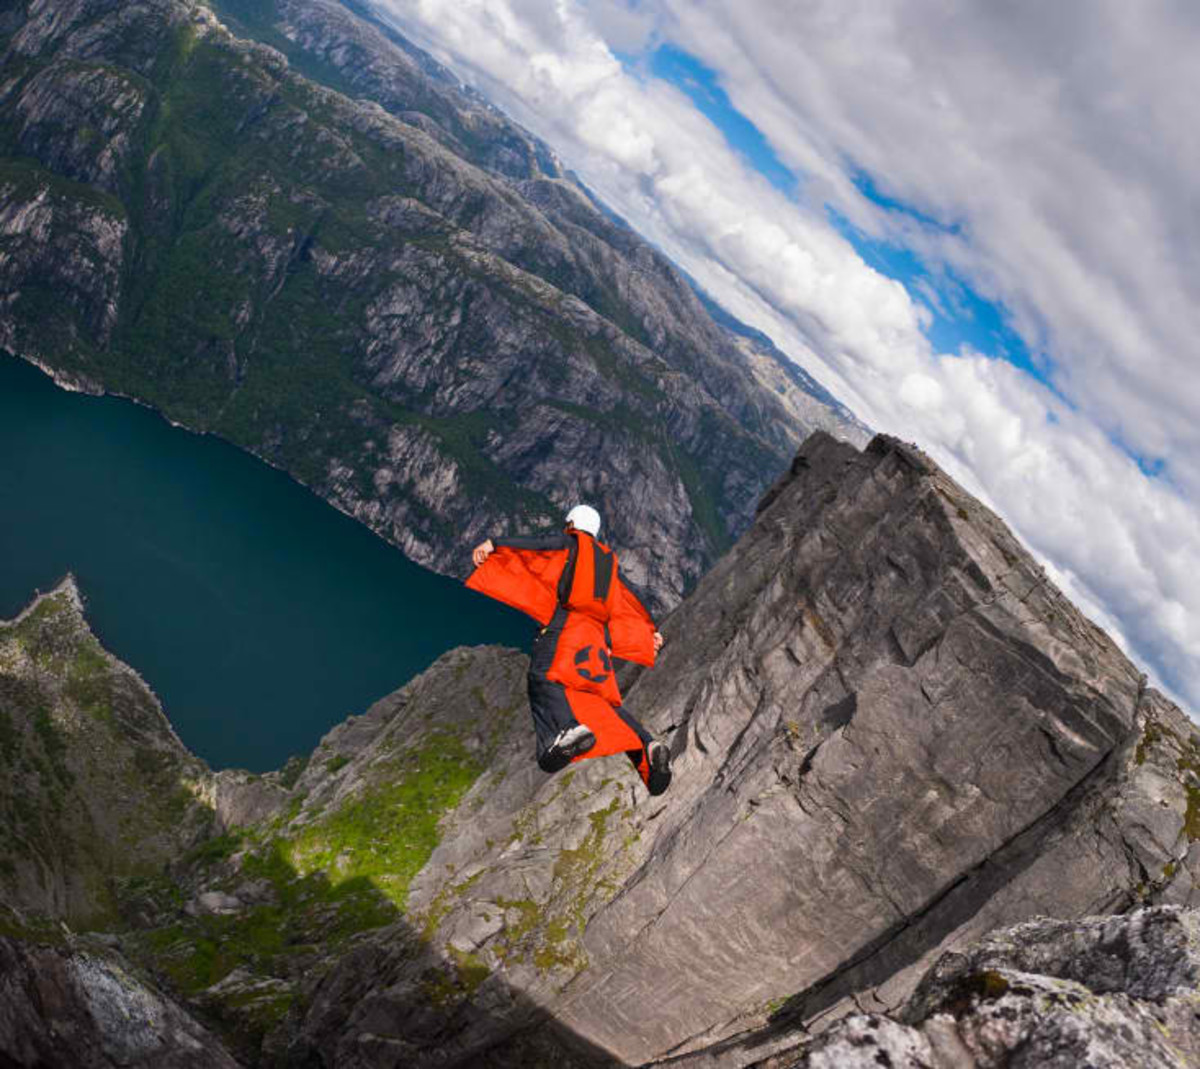 wingsuit flying in Kjerag, Norway